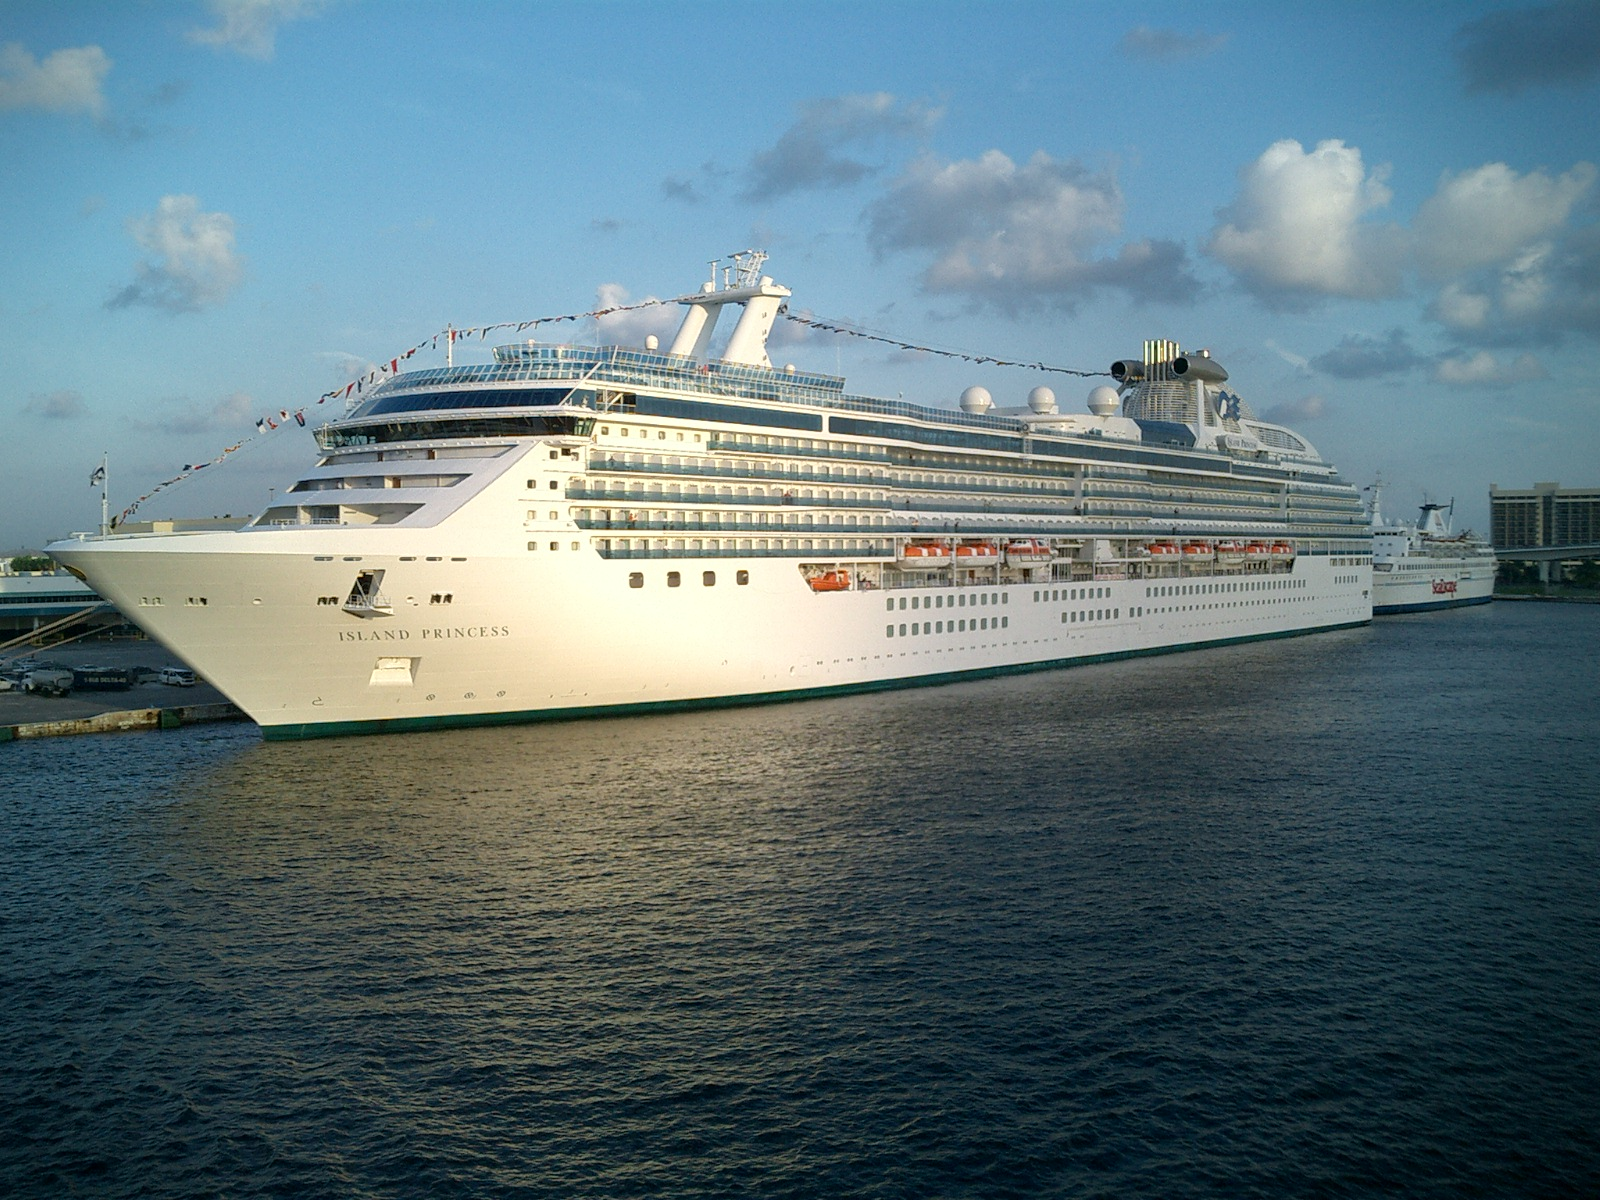 islandprincess5.jpg